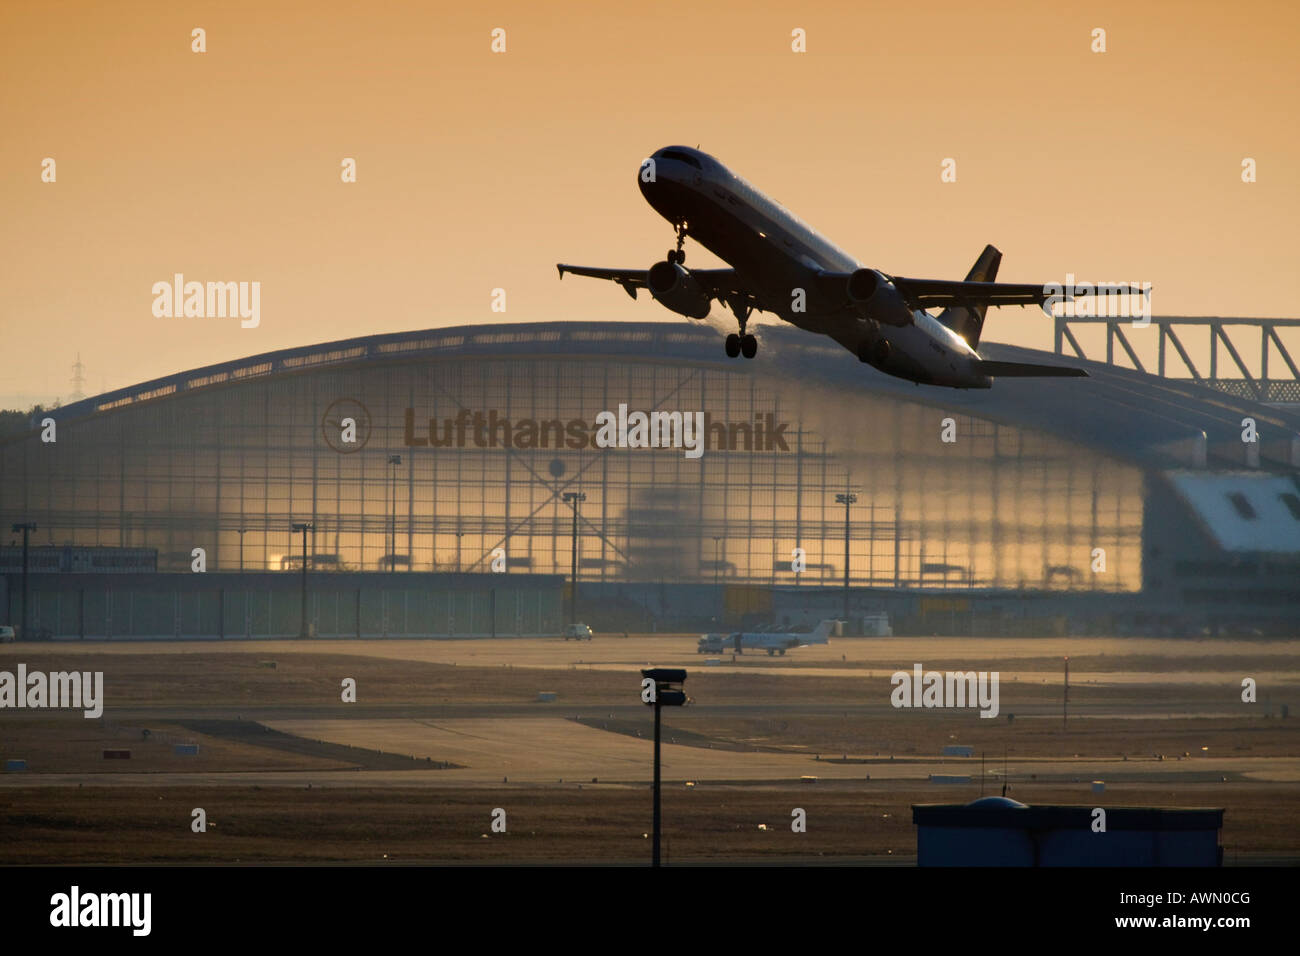 Lufthansa Airbus taking off at dusk, Lufthansa Technik hangar in background, Frankfurt International Airport, Frankfurt, - Stock Image